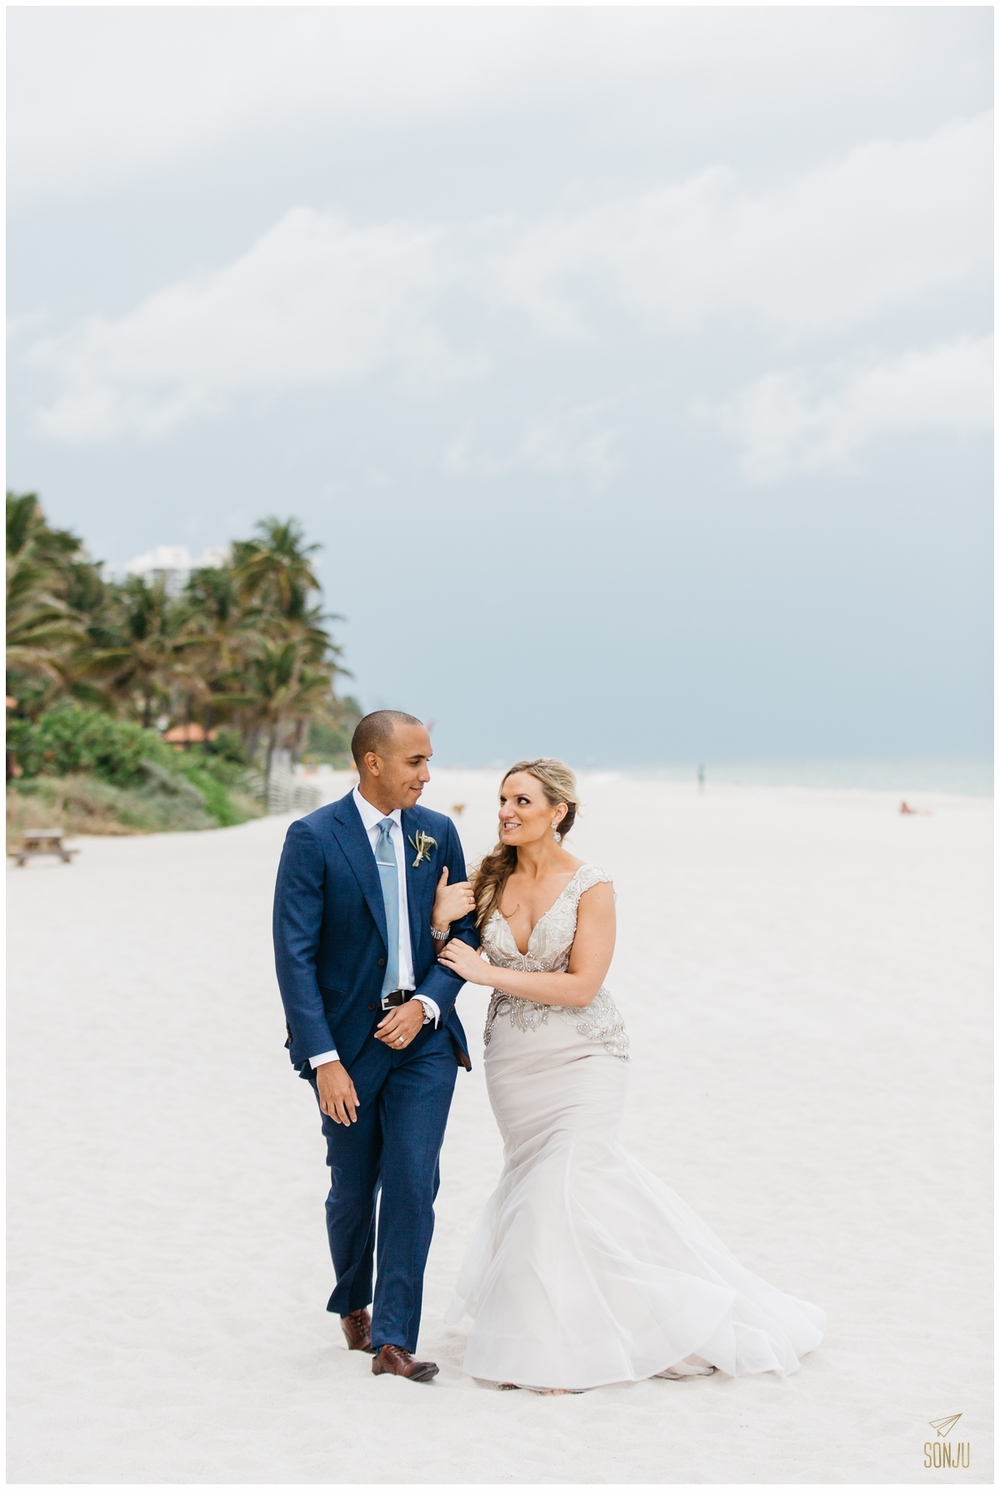 Bride and groom beach portraits at the Pelican Grand Resort Fort Lauderdale Florida